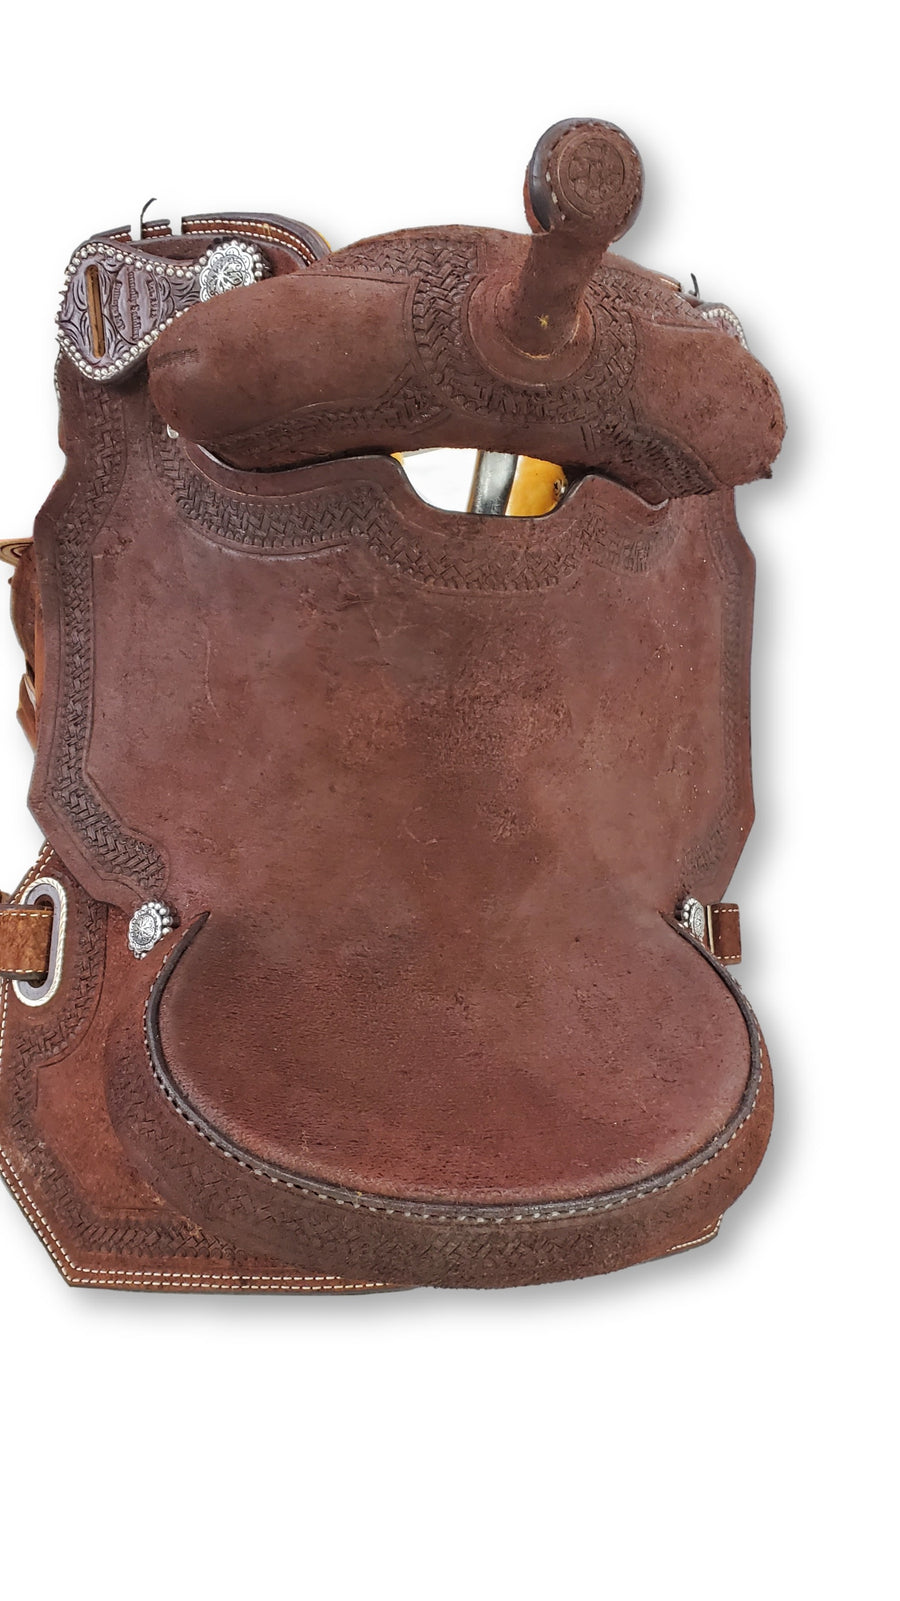 "Connolly's Barrel Saddle - 15"" - #B2003(1)"